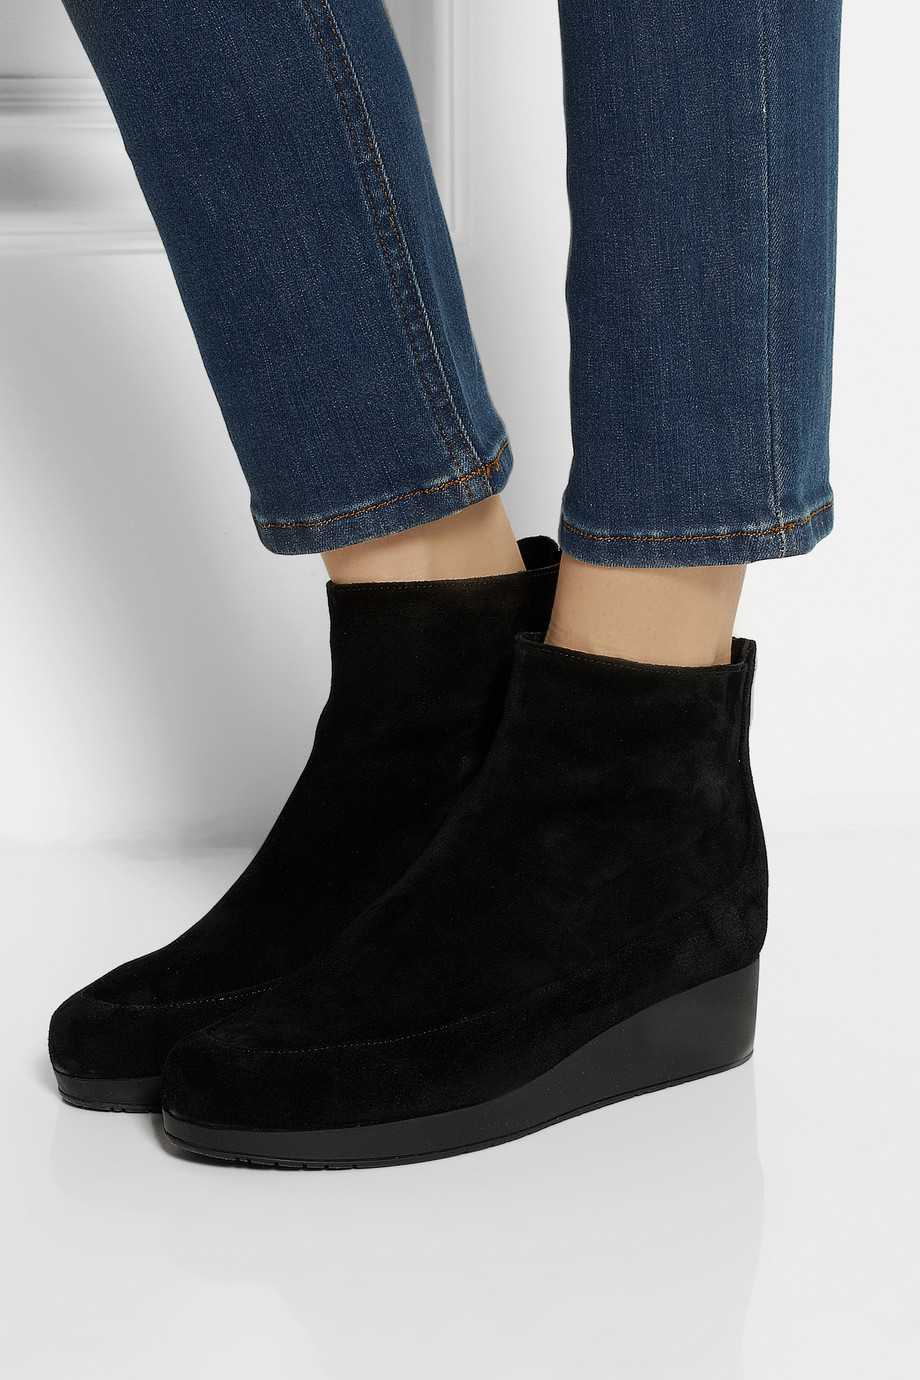 2edec7a44f1a Lyst - Robert Clergerie Nagil Suede Wedge Ankle Boots in Black